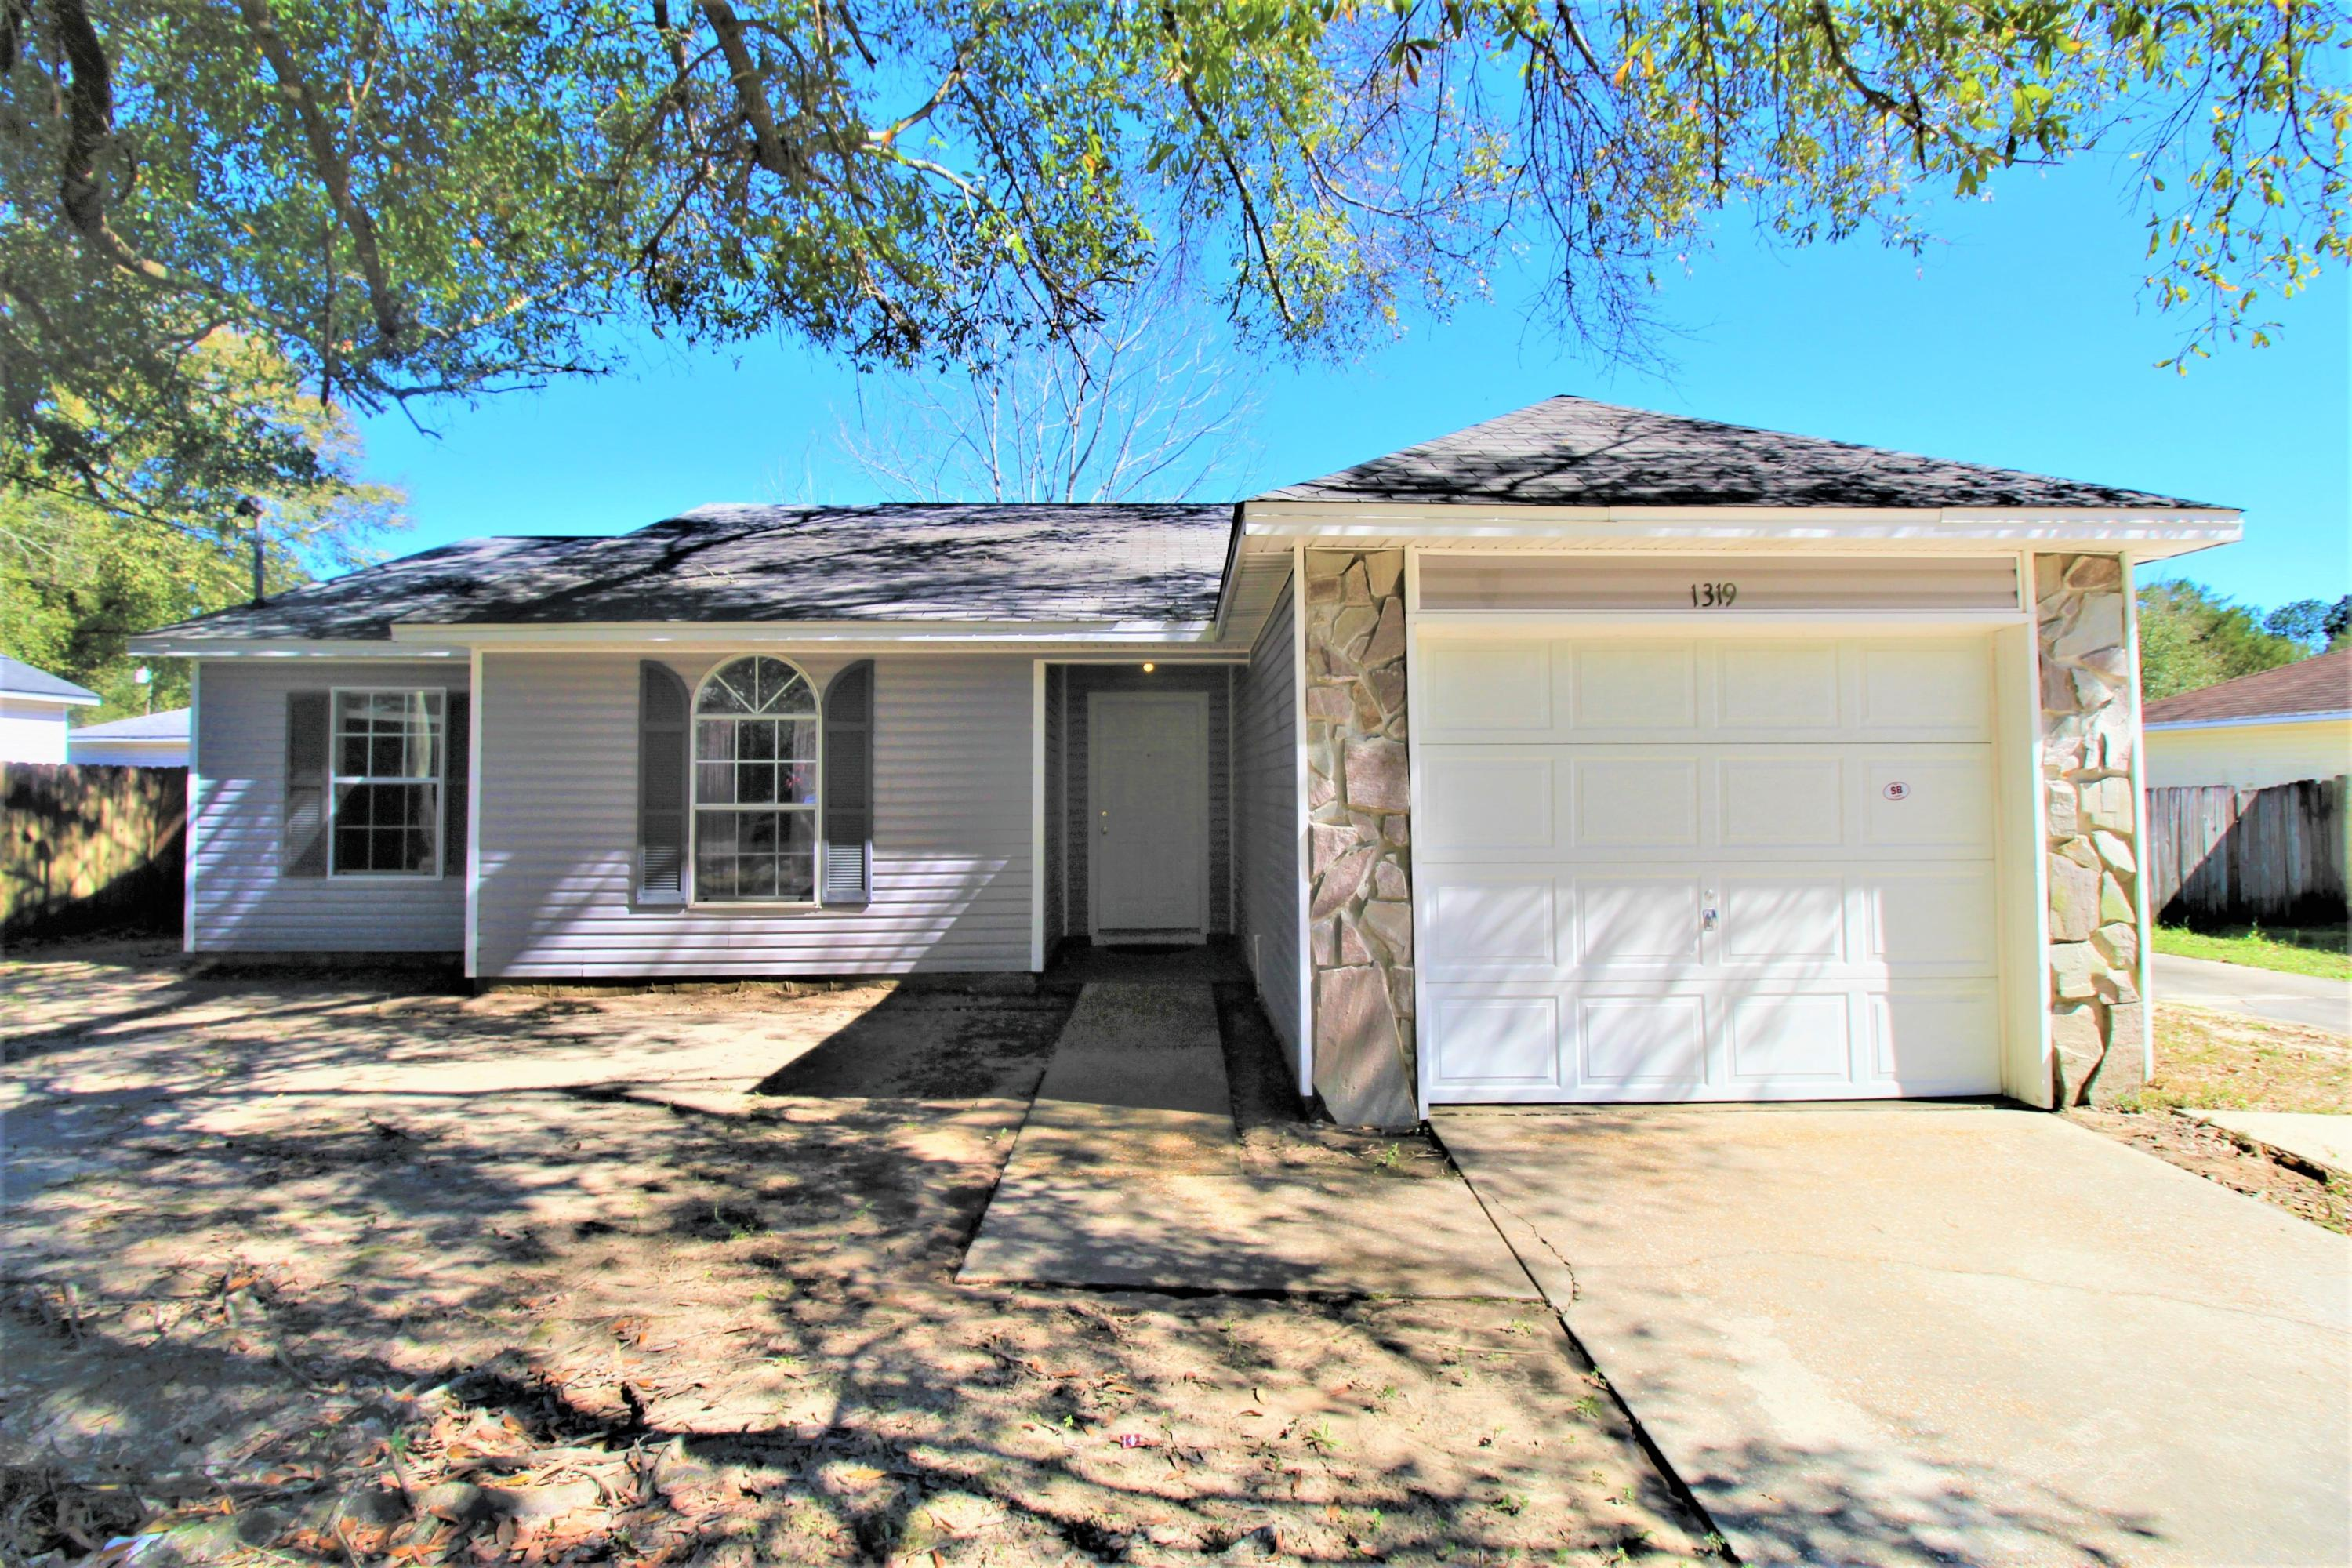 Located in the heart of Crestview, this home is ready to be loved! High ceilings, tall windows, and